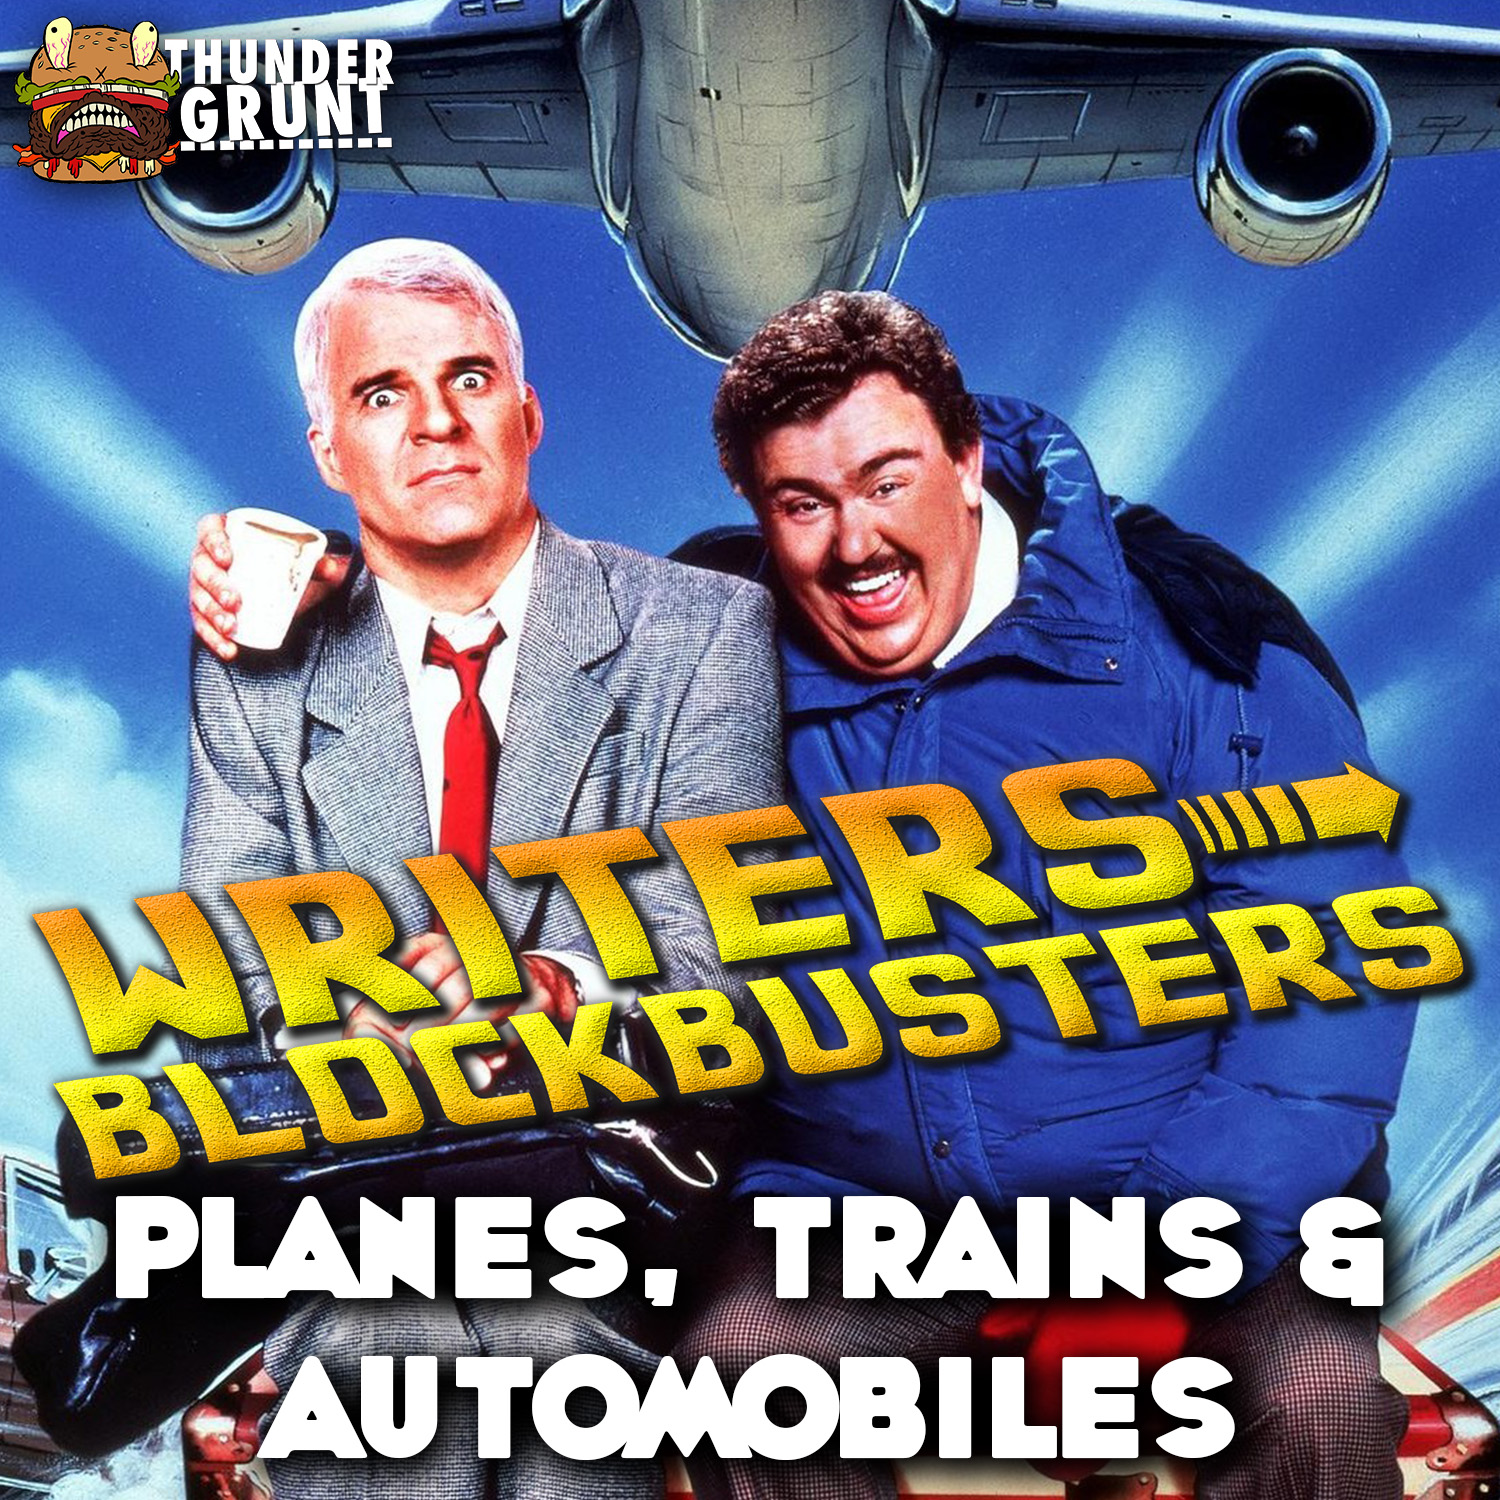 WRITERS/BLOCKBUSTERS 019 | PLANES, TRAINS & AUTOMOBILES